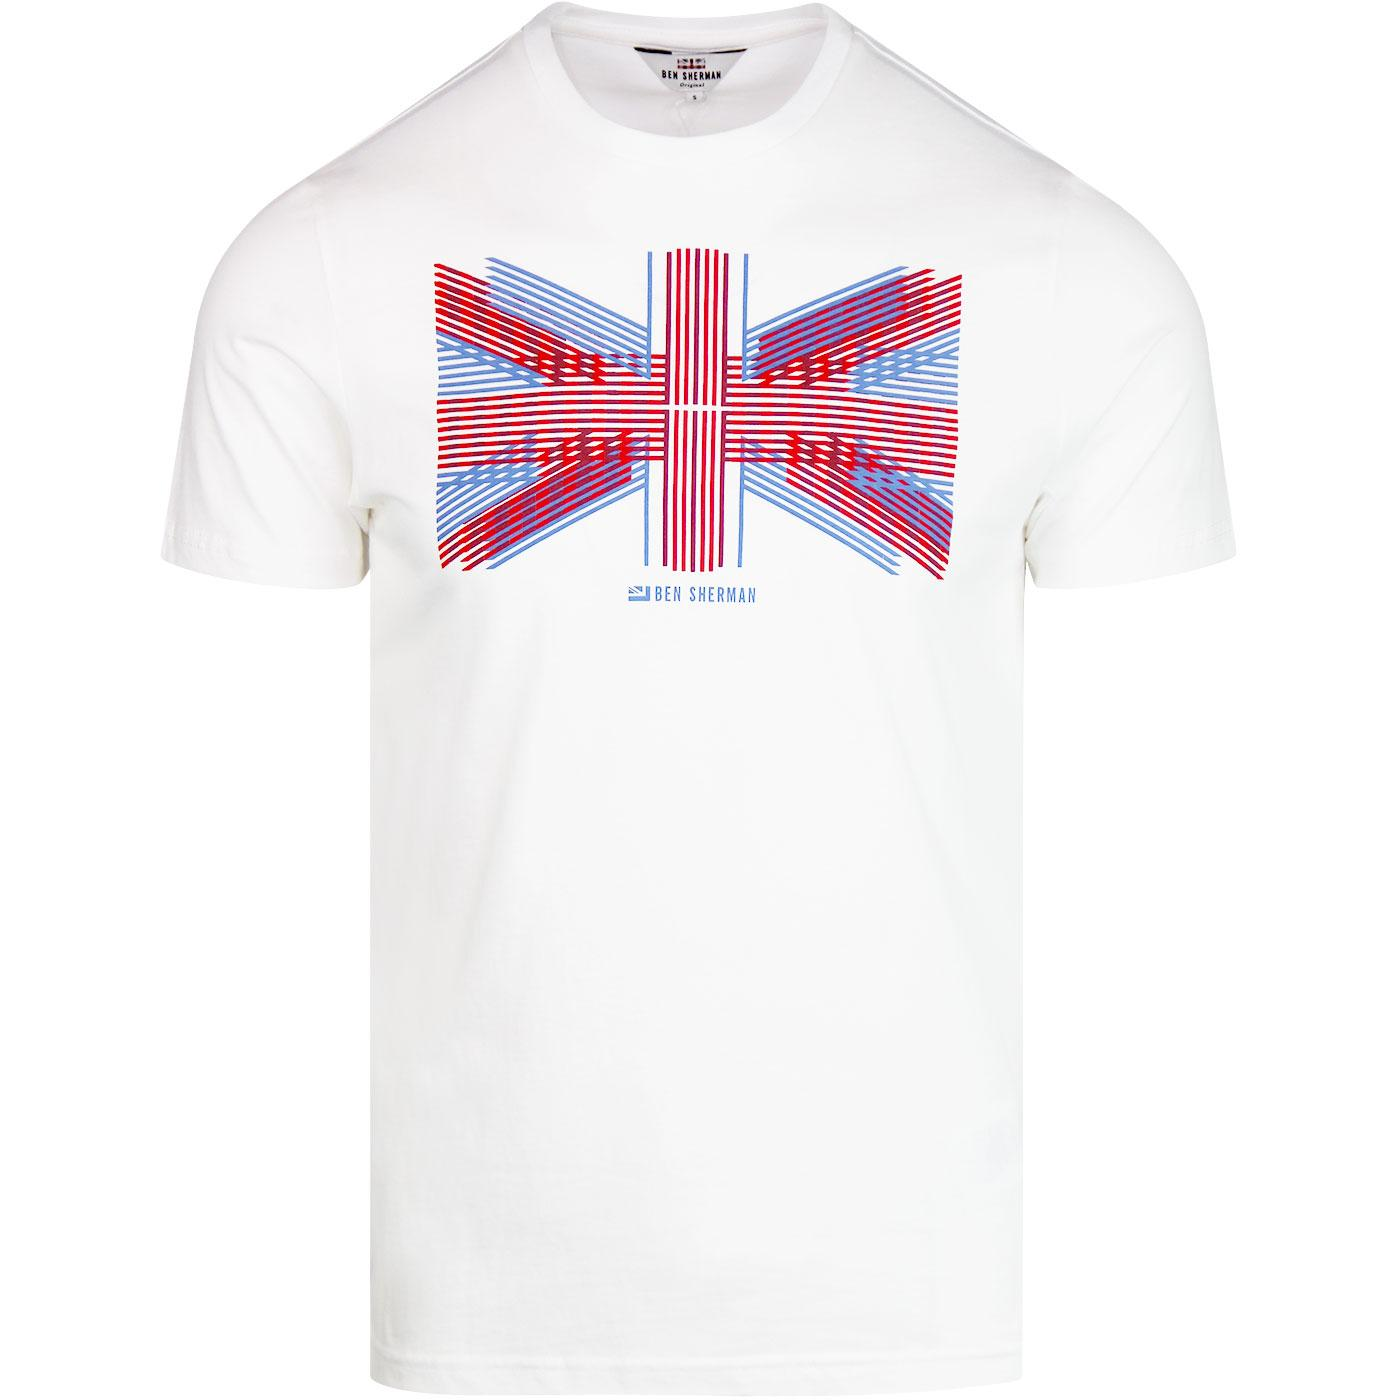 BEN SHERMAN Union Lines Retro Mod Flag T-Shirt